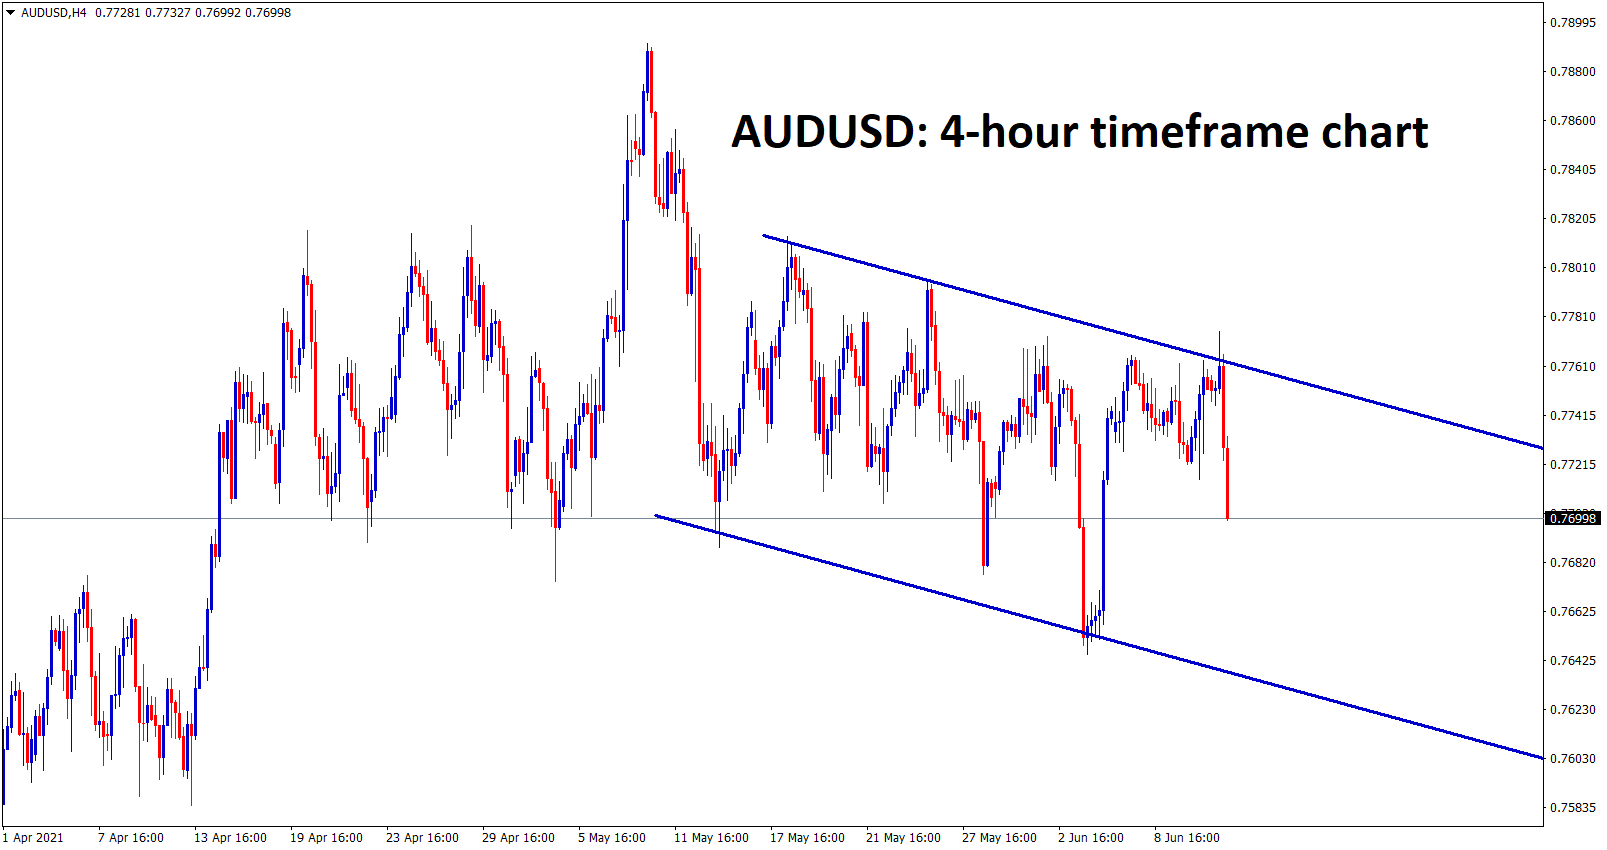 AUDUSD is ranging up and down between the specific prices